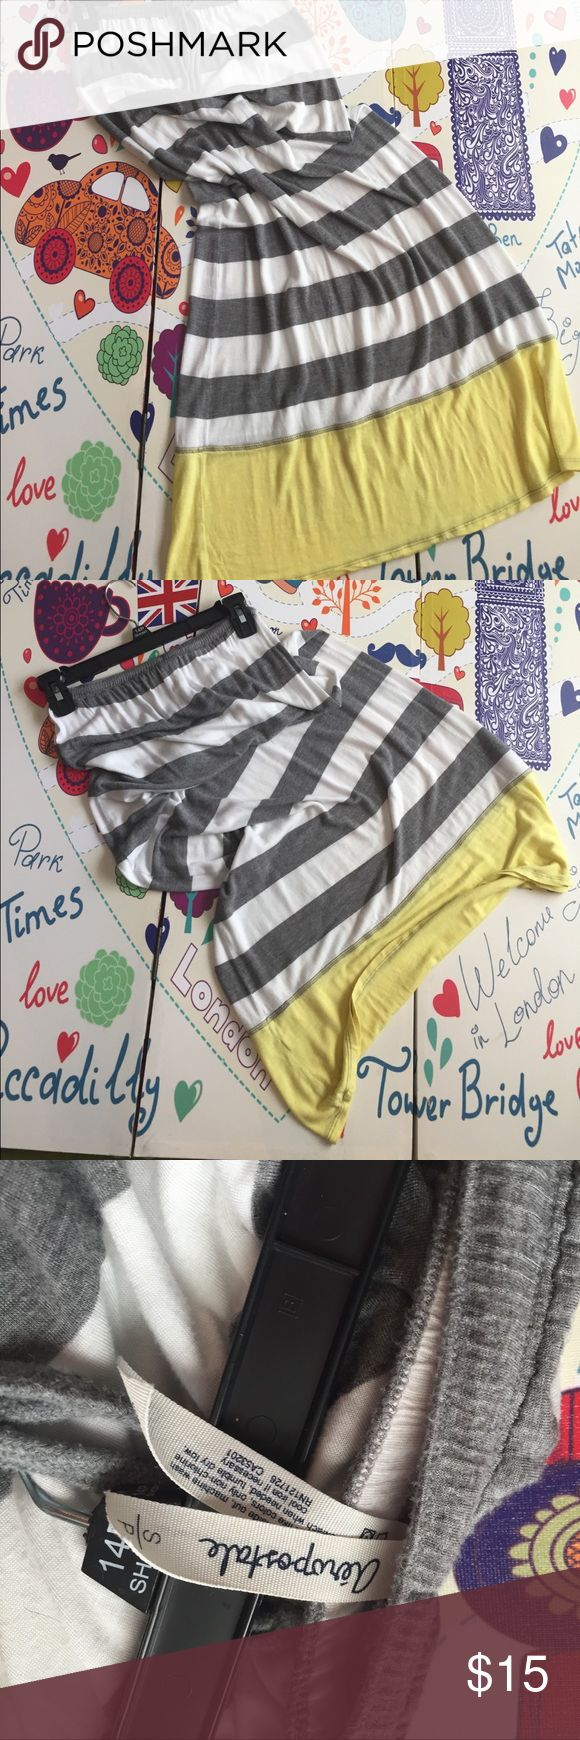 never really wore it maxi skirt grey and white stripes yellow at the bottom Aeropostale Skirts Maxi